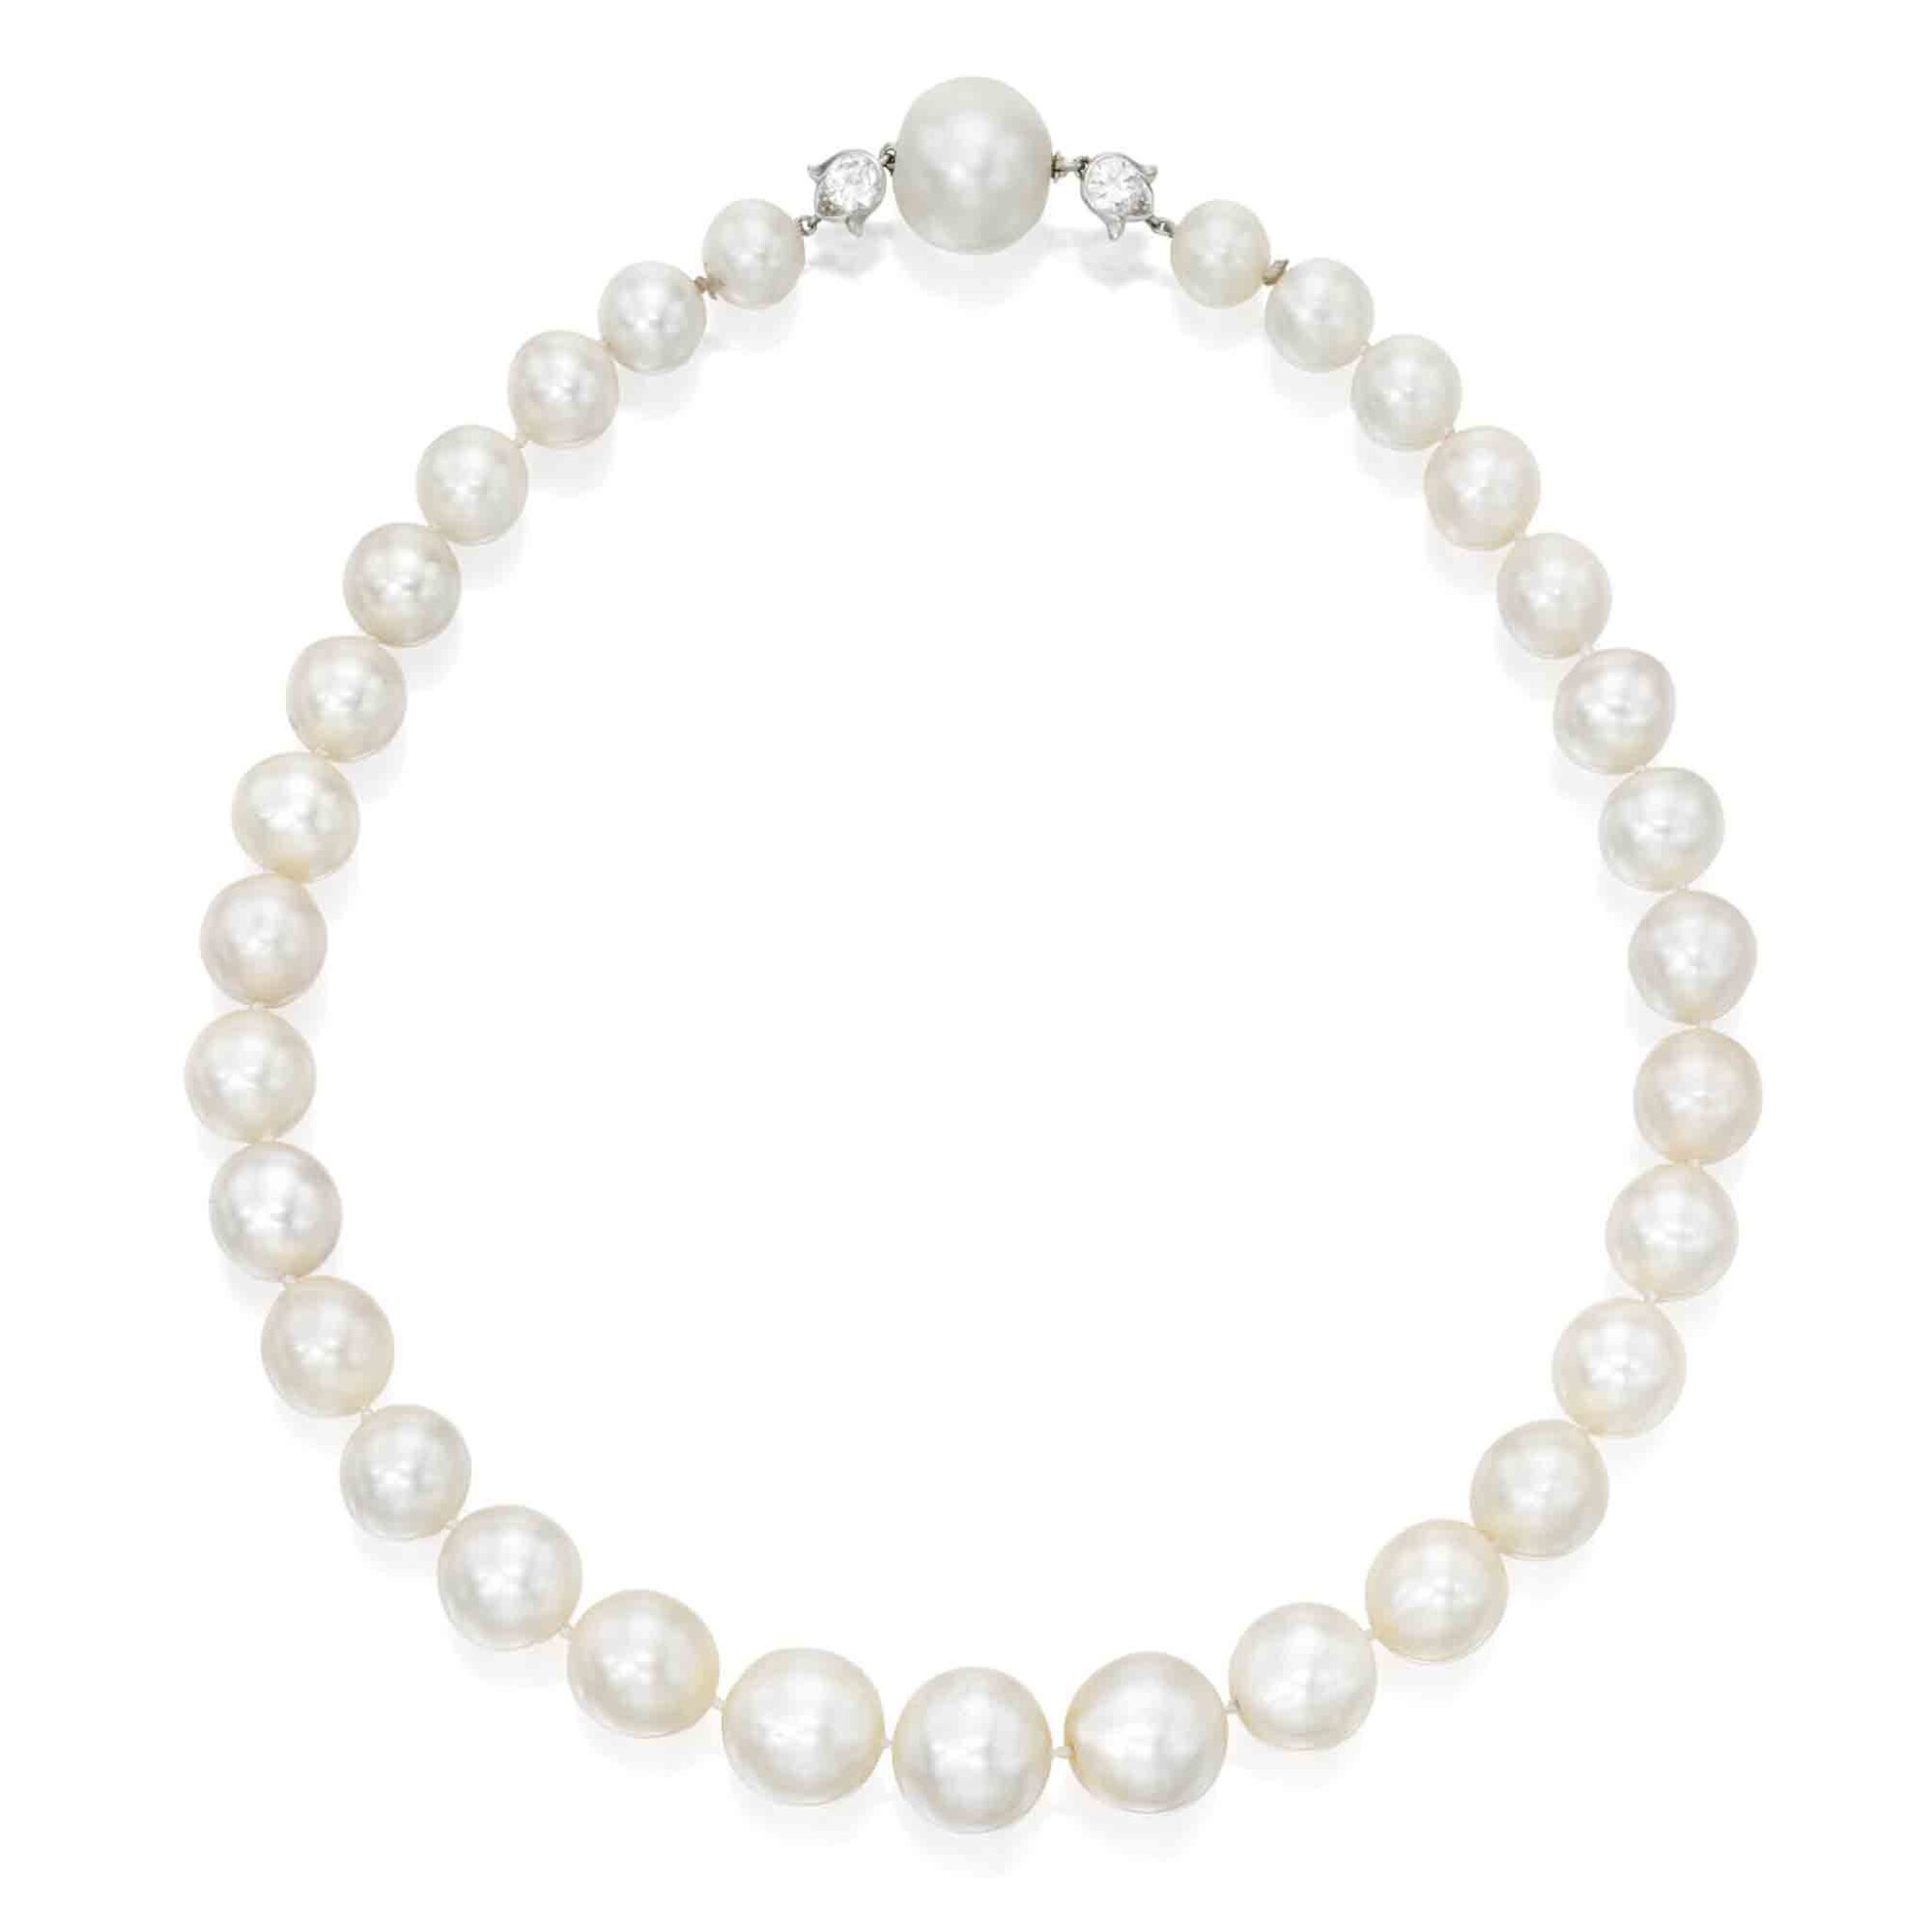 View full screen - View 1 of Lot 211. Cartier [卡地亞]   A Rare Natural Pearl and Diamond Necklace [罕有天然珍珠配鑽石項鏈].